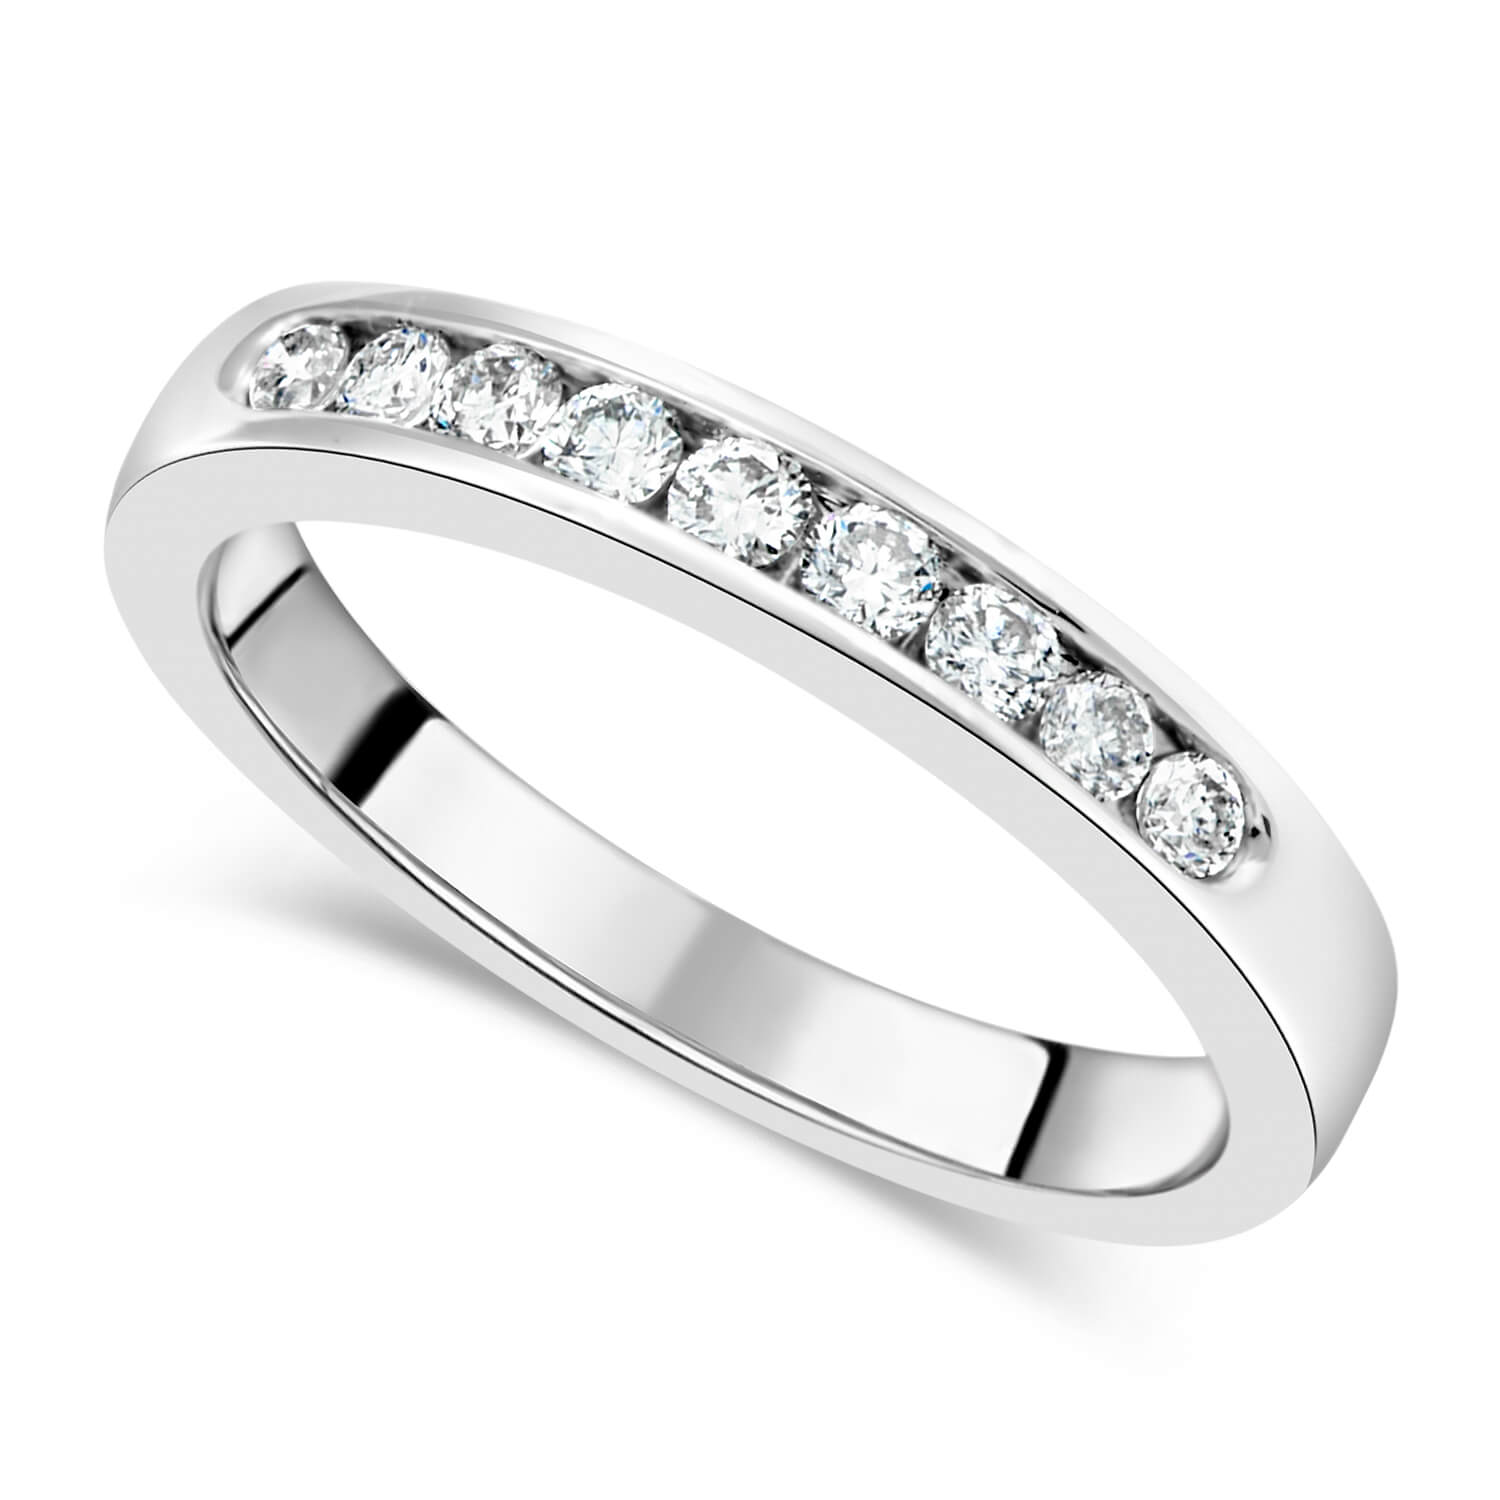 18ct white gold 0.25 carat diamond channel set eternity ring